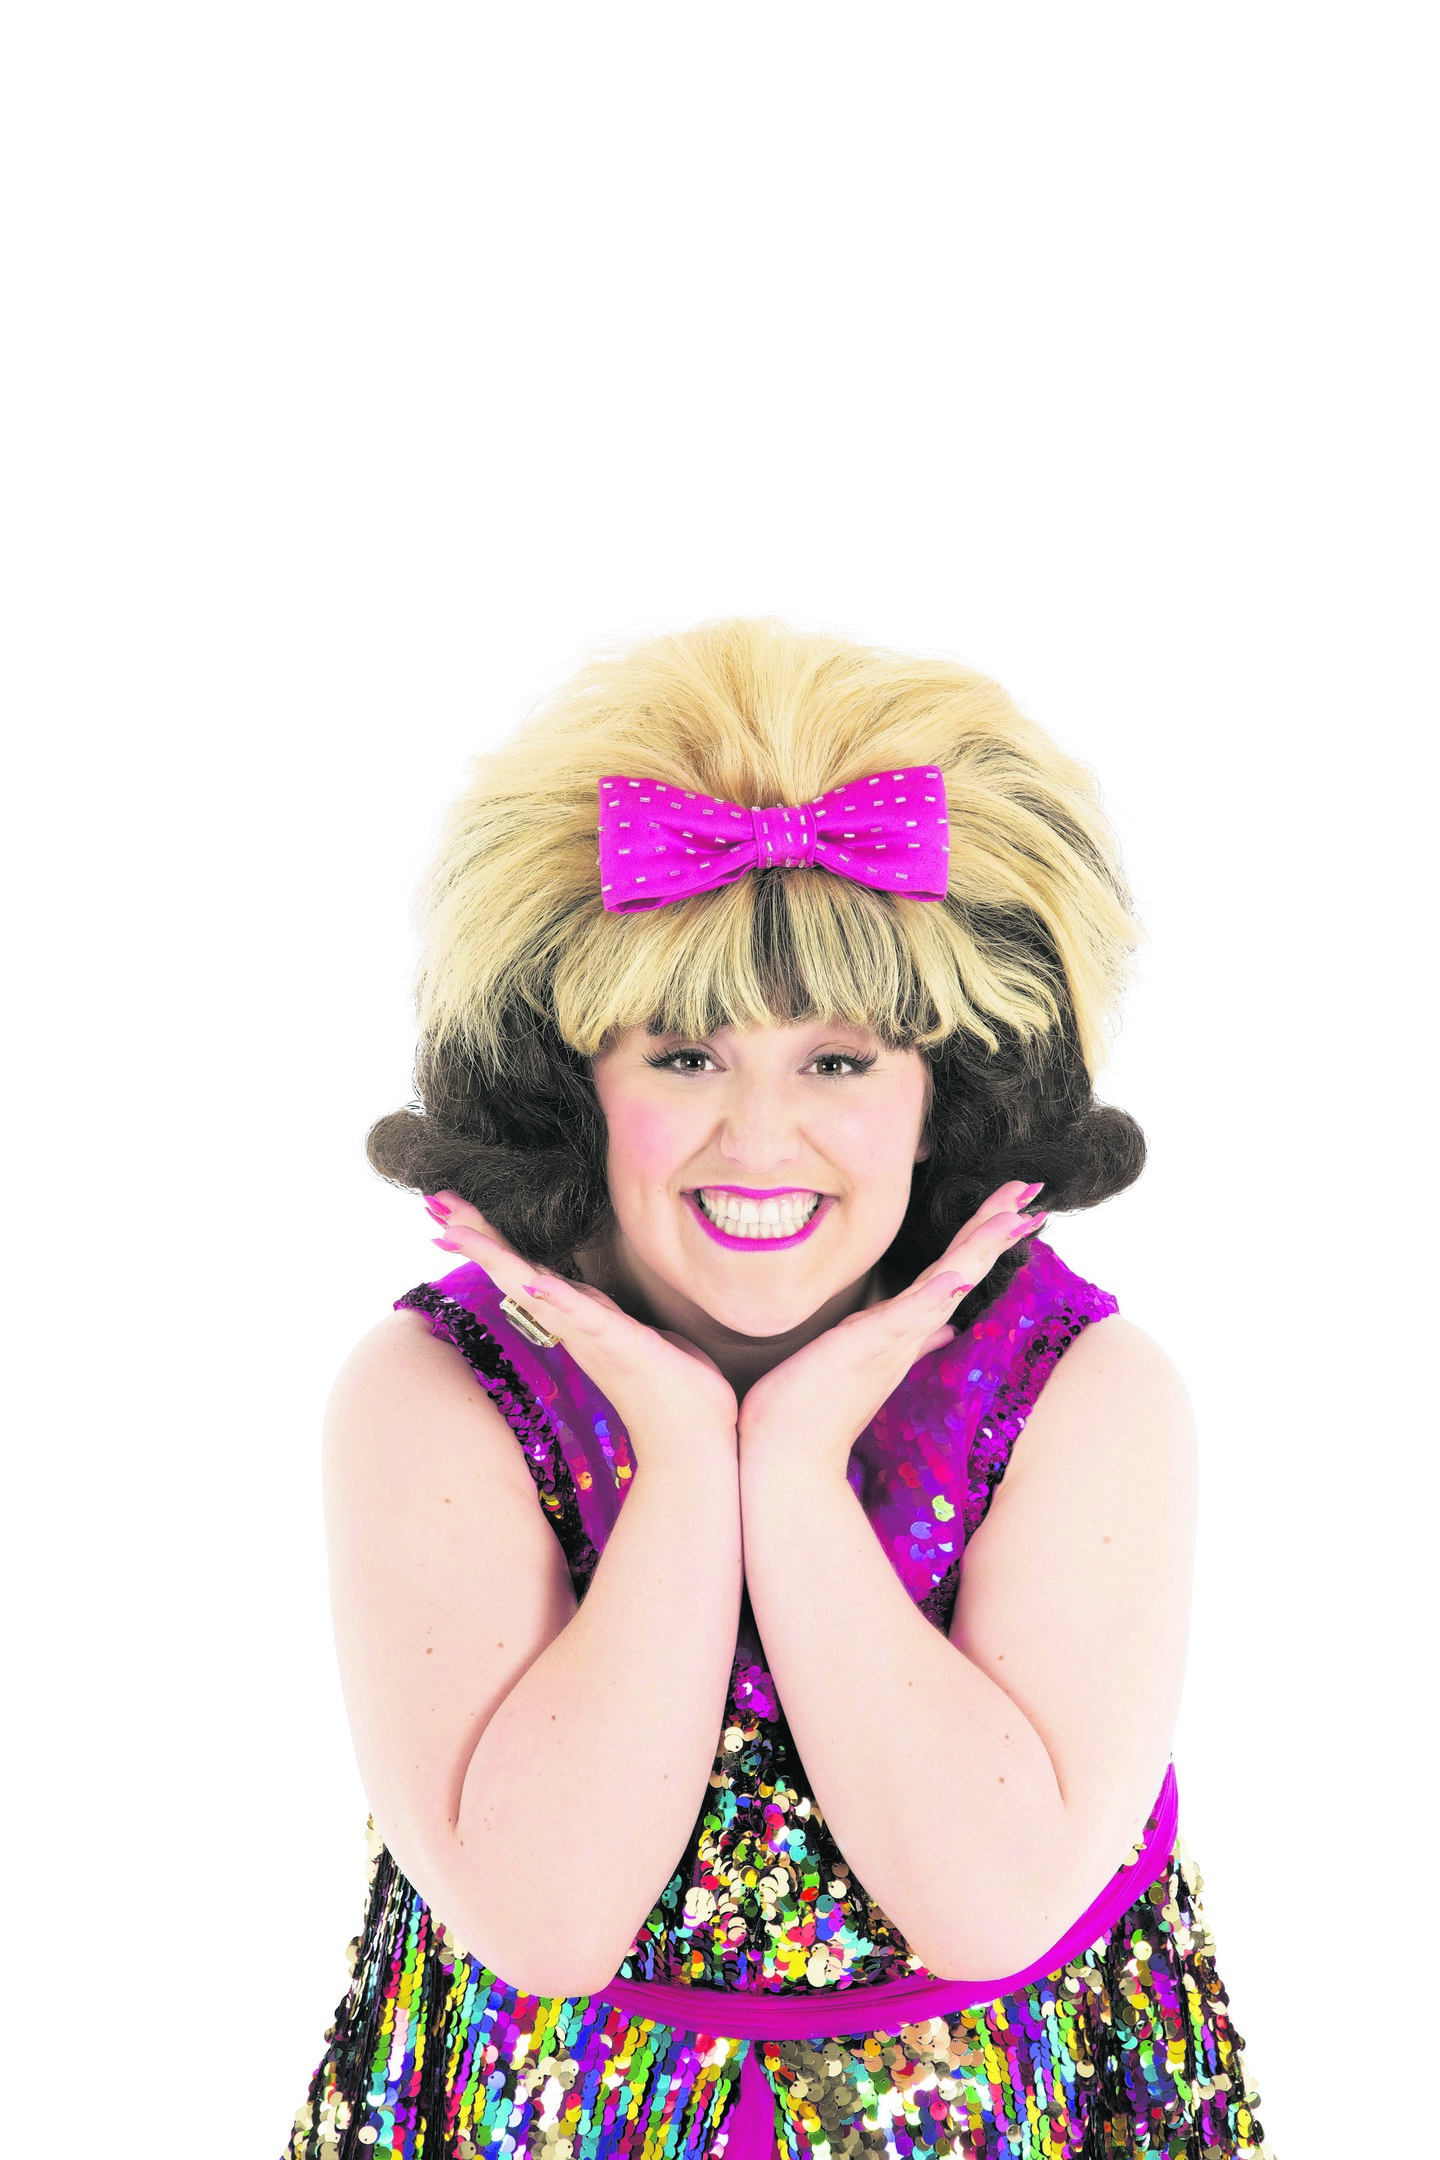 Freya Sutton as Tracy Turnblad  in Hairspray. PHOTOS: Ellie Kurttz